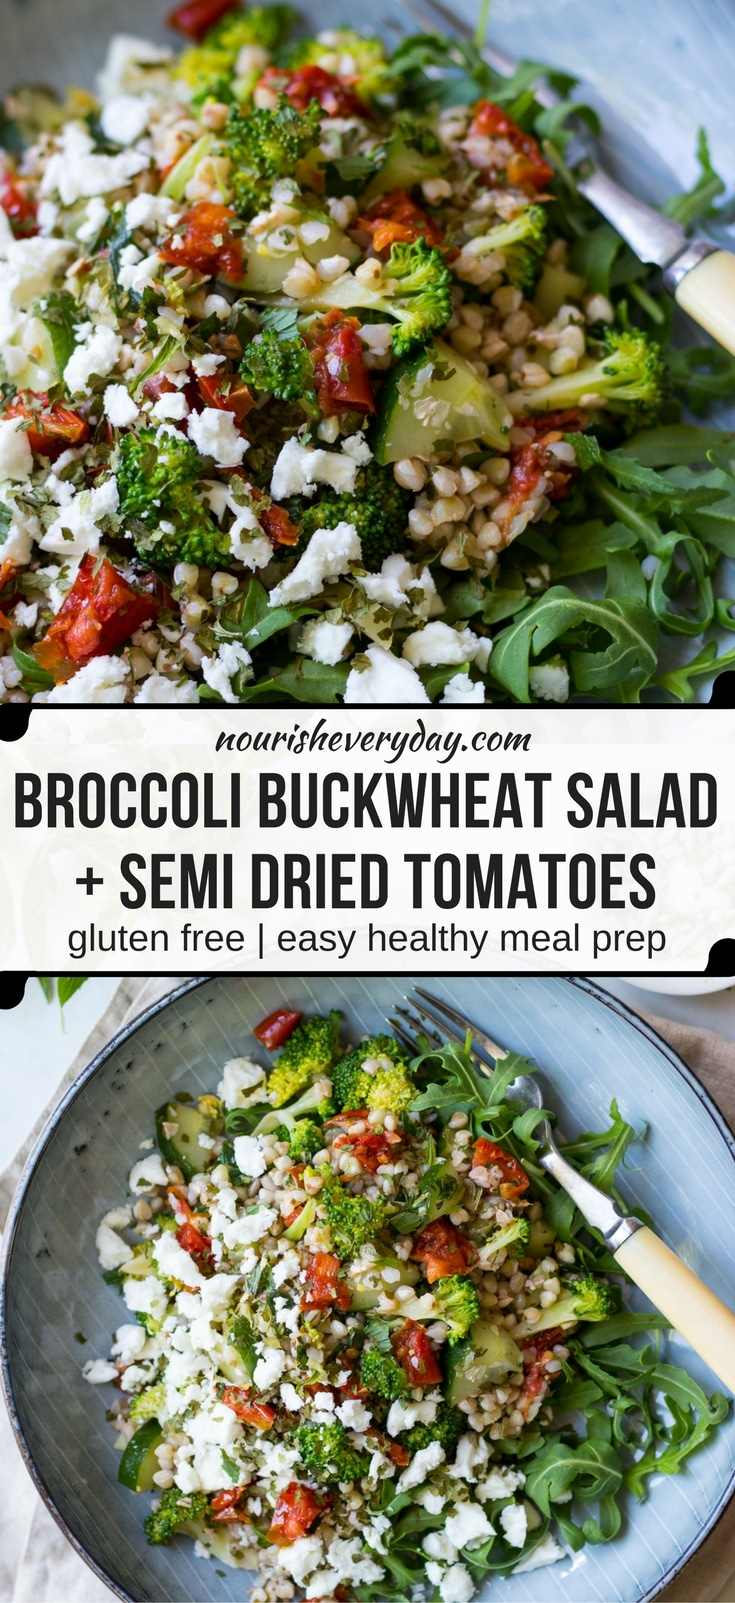 Broccoli Buckwheat Salad with loads of flavour from herbs, semi dried tomatoes and feta! Gluten free and super easy to make! #buckwheatsalad #glutenfree #healthy #buckwheatrecipes